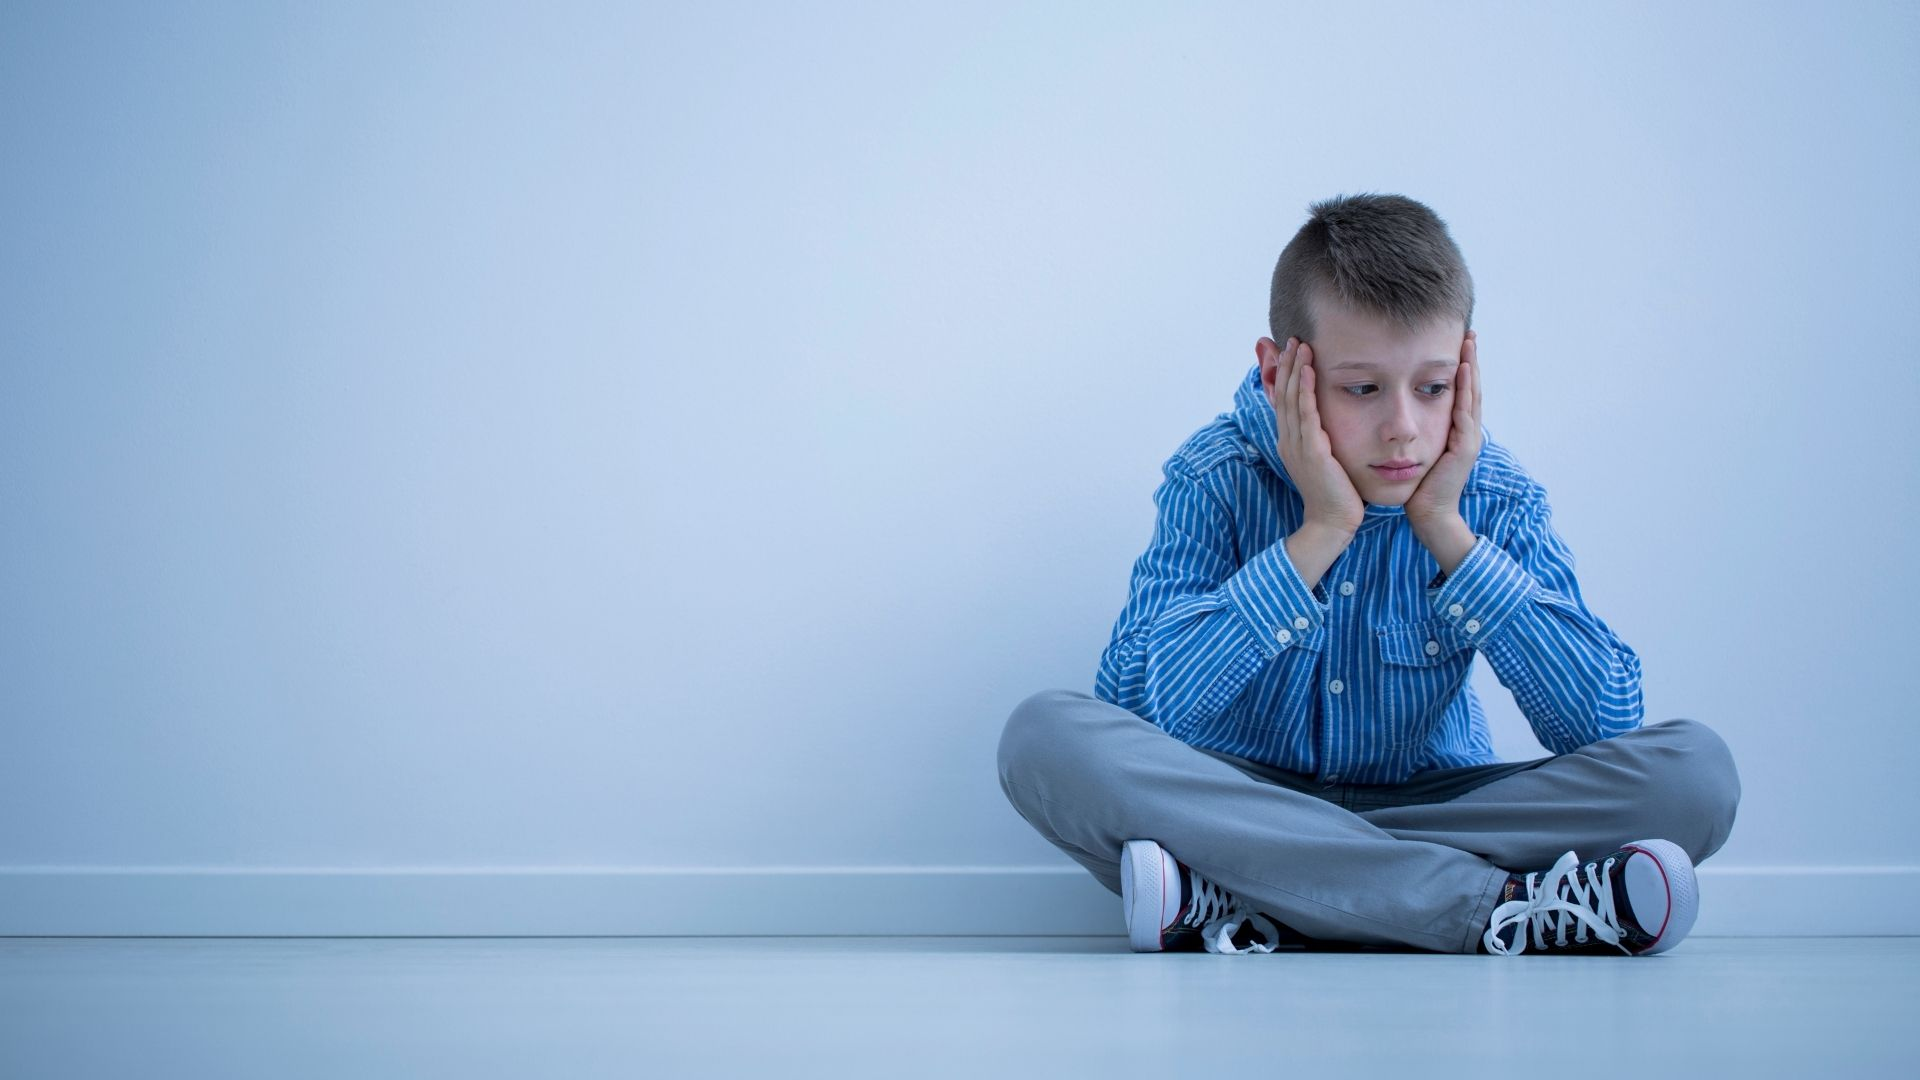 child antisocial - Living with an Asperger child